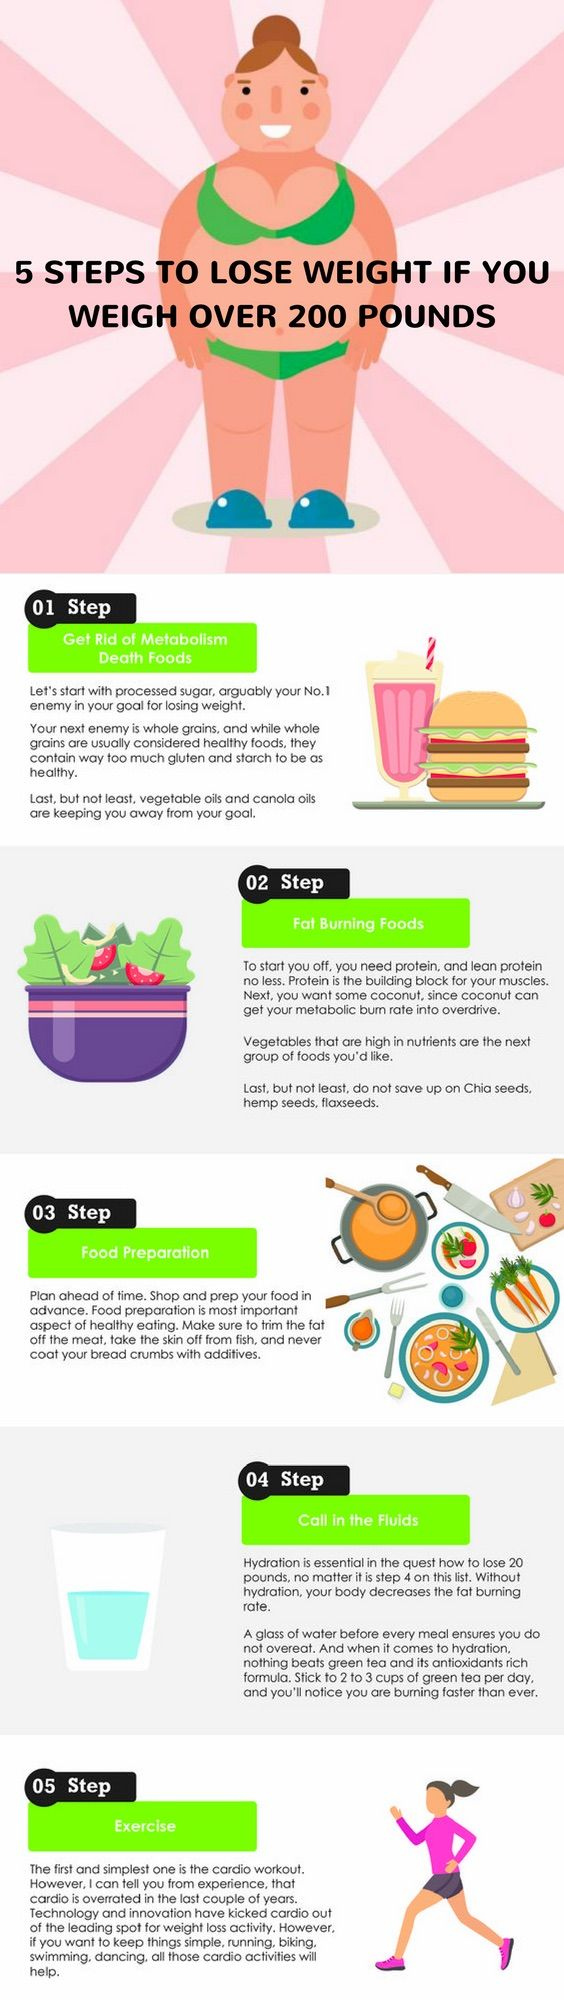 5 best ways to start losing weight if youre currently over 200 5 best ways to start losing weight if youre currently over 200 pounds ccuart Gallery